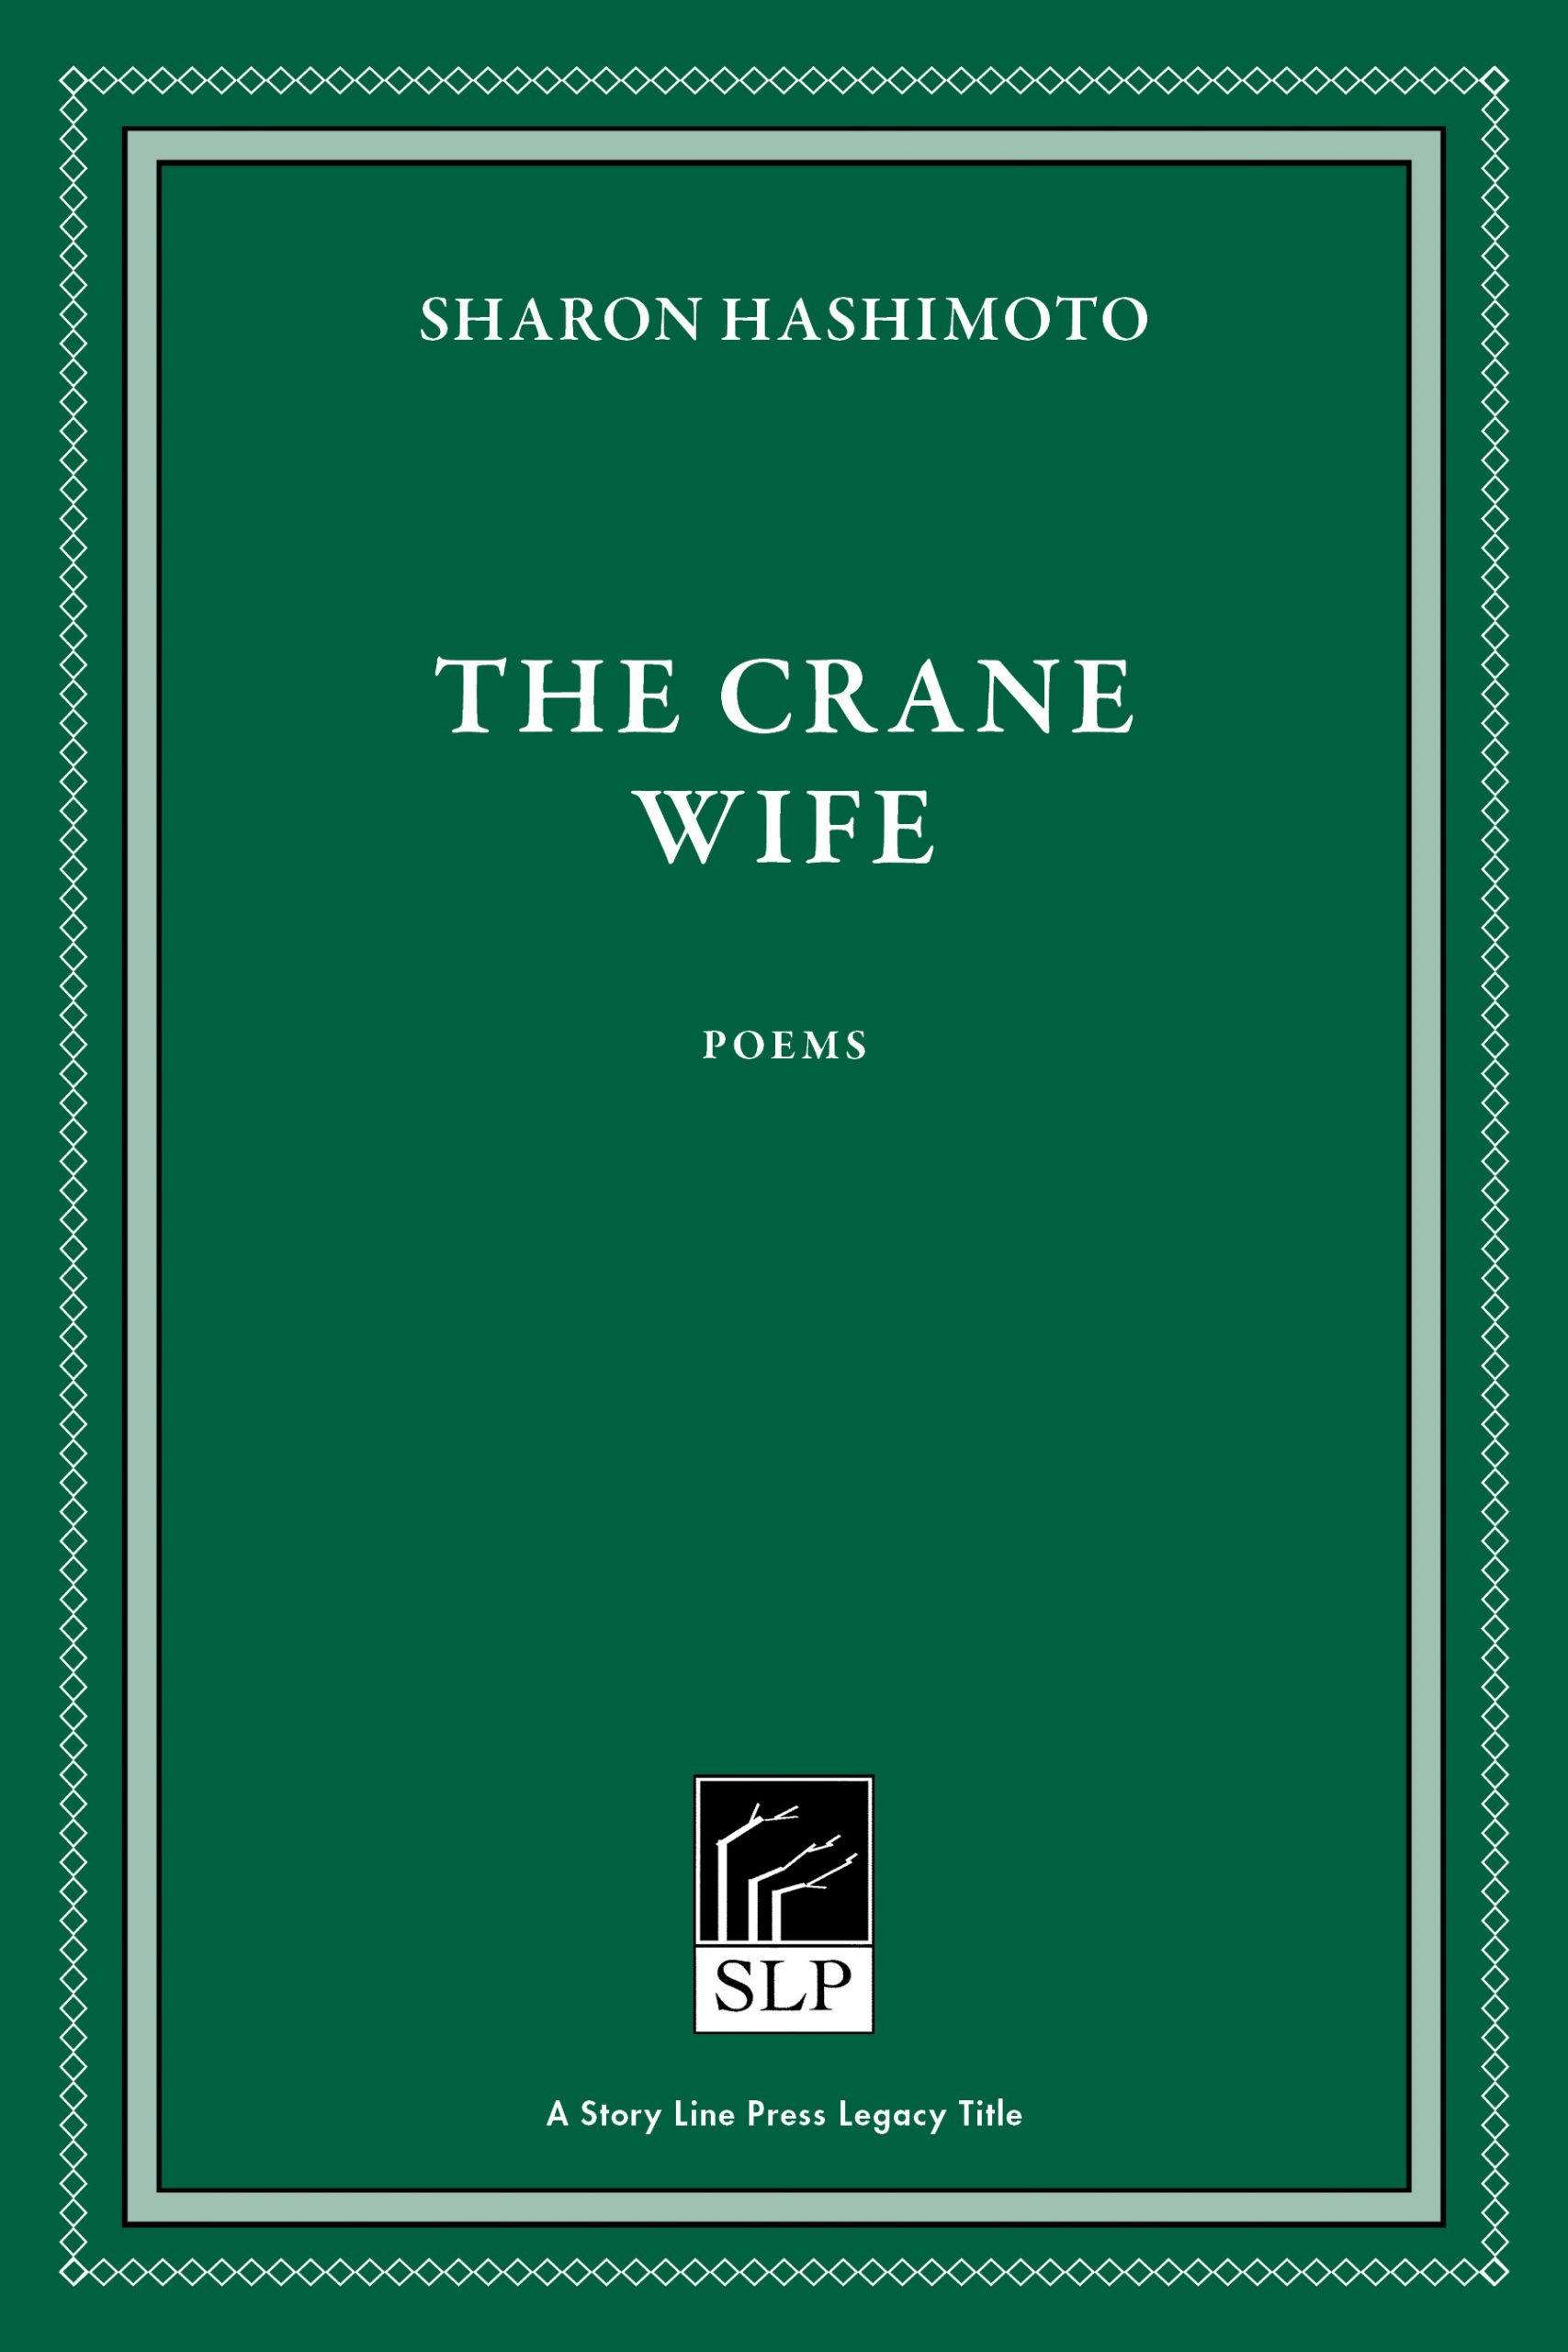 Story Line Press legacy tittle, Sharon Hashimoto The Crane Wife, white script text against emerald green background.